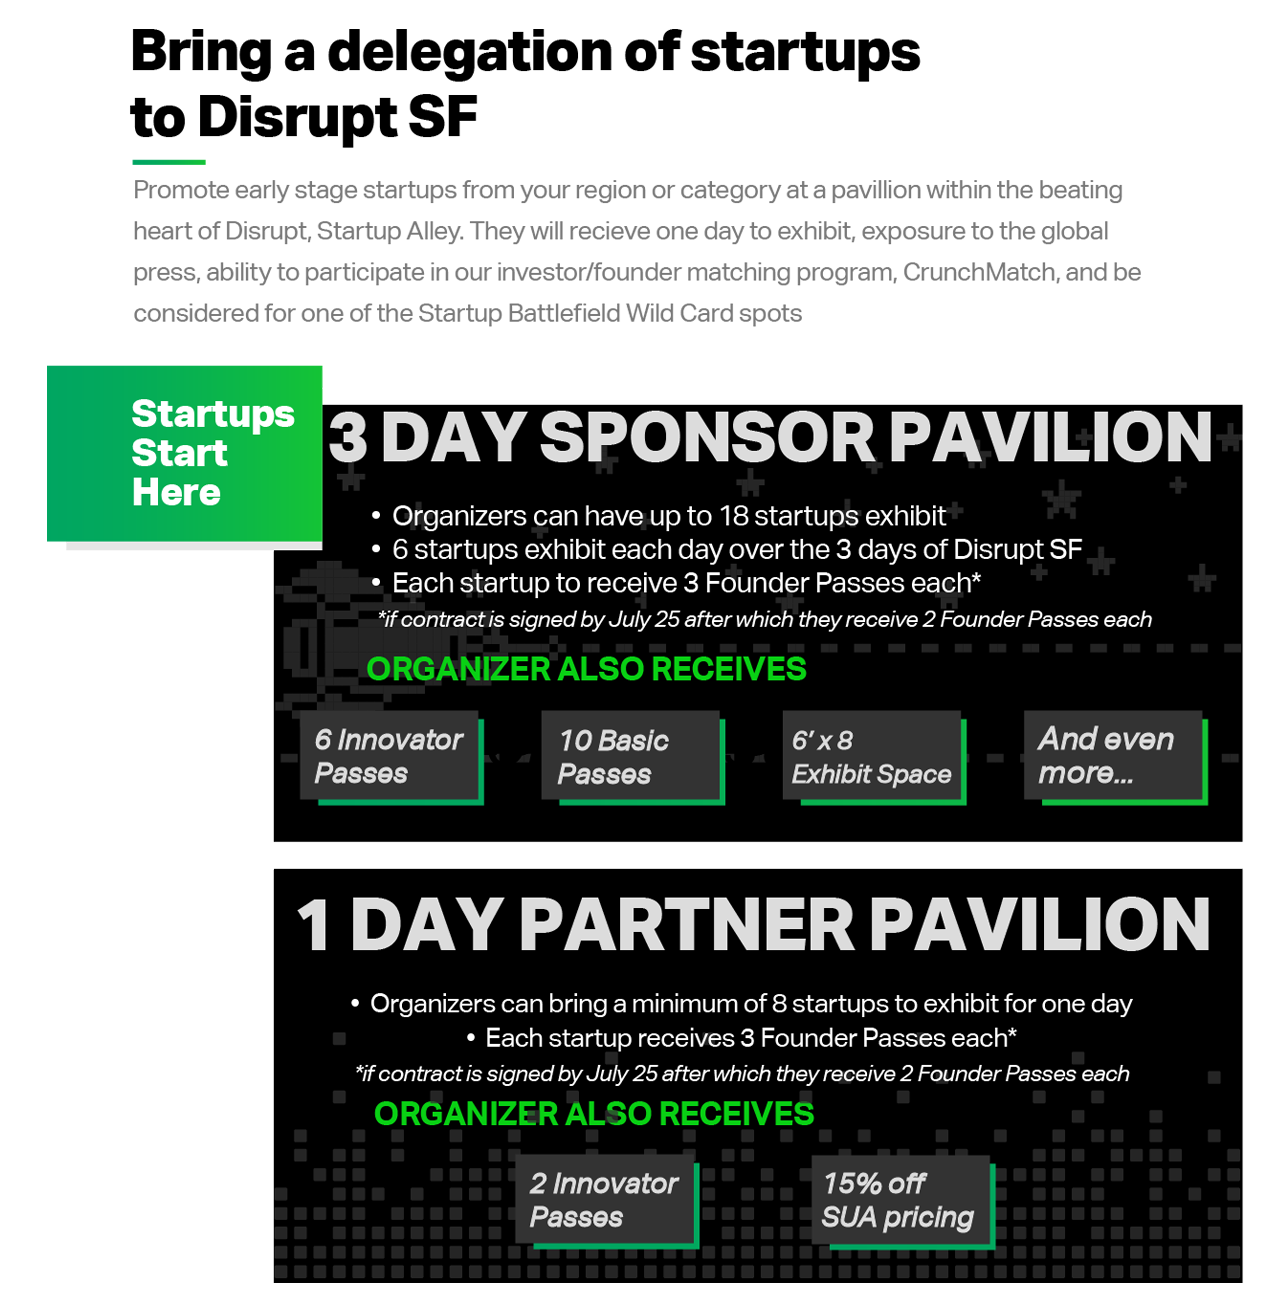 Showcase your country's startups at Disrupt SF